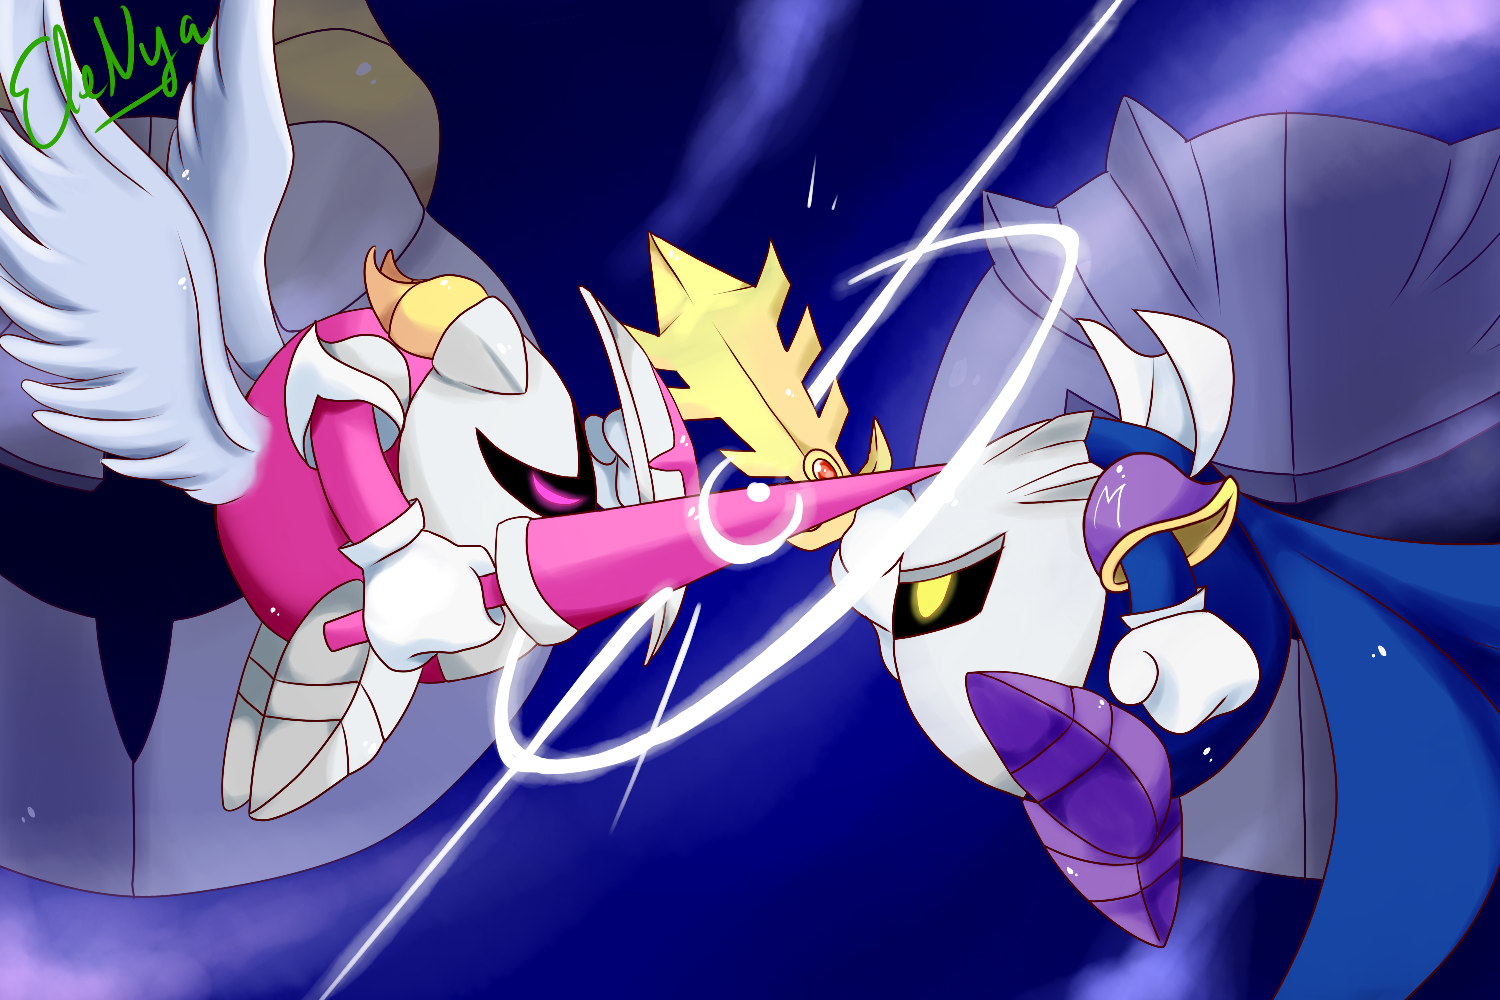 Nya Kirby Wallpaper: Meta Knight Vs Galacta Knight By Ele-nya On DeviantArt